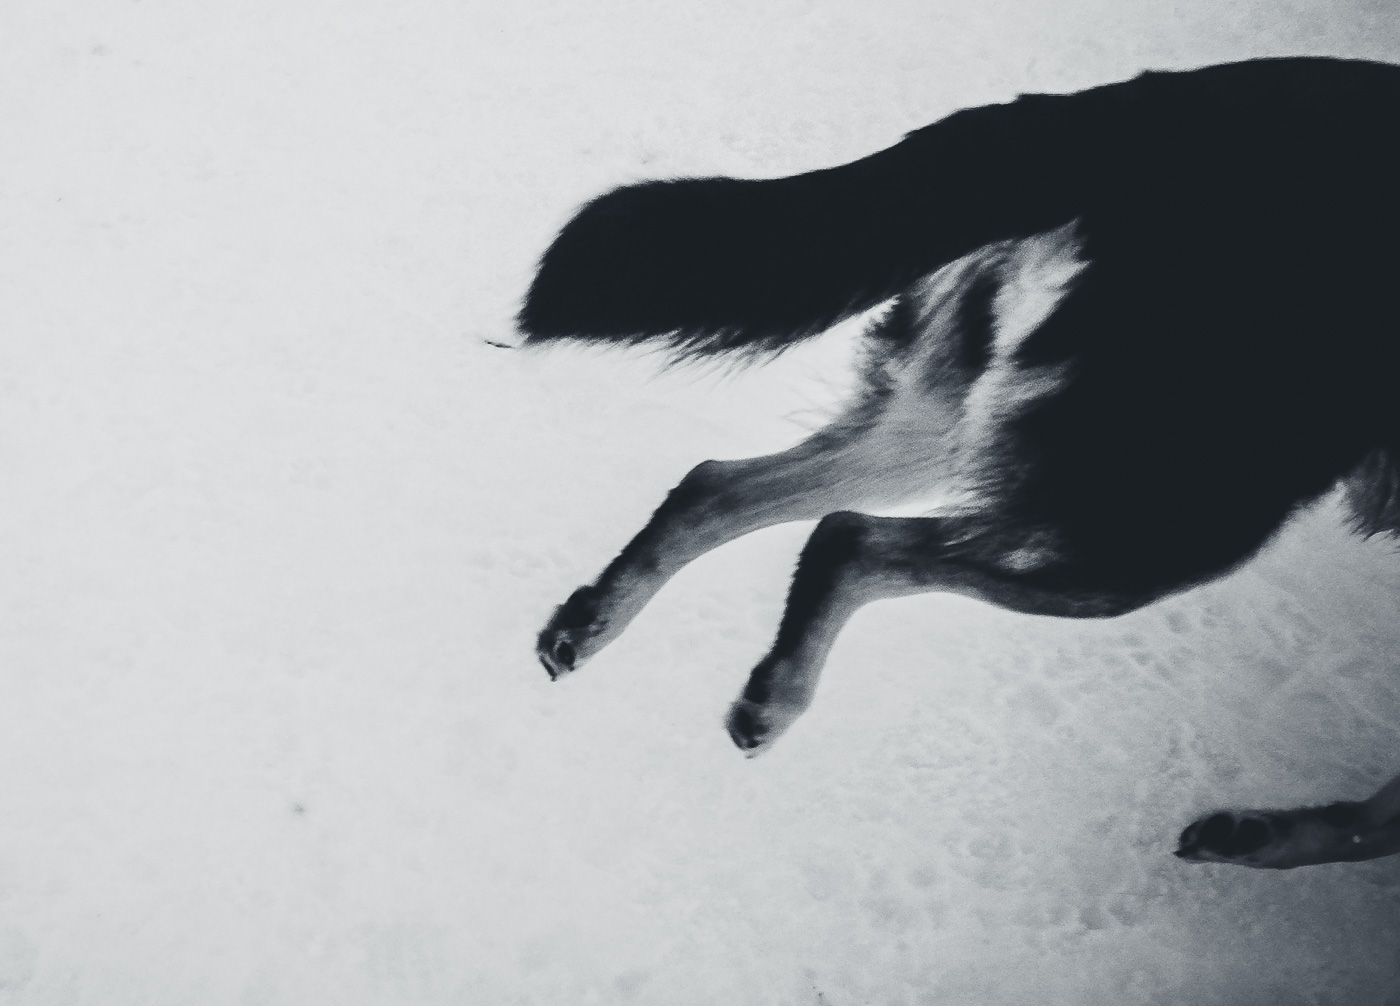 hedy bach images - dog 10